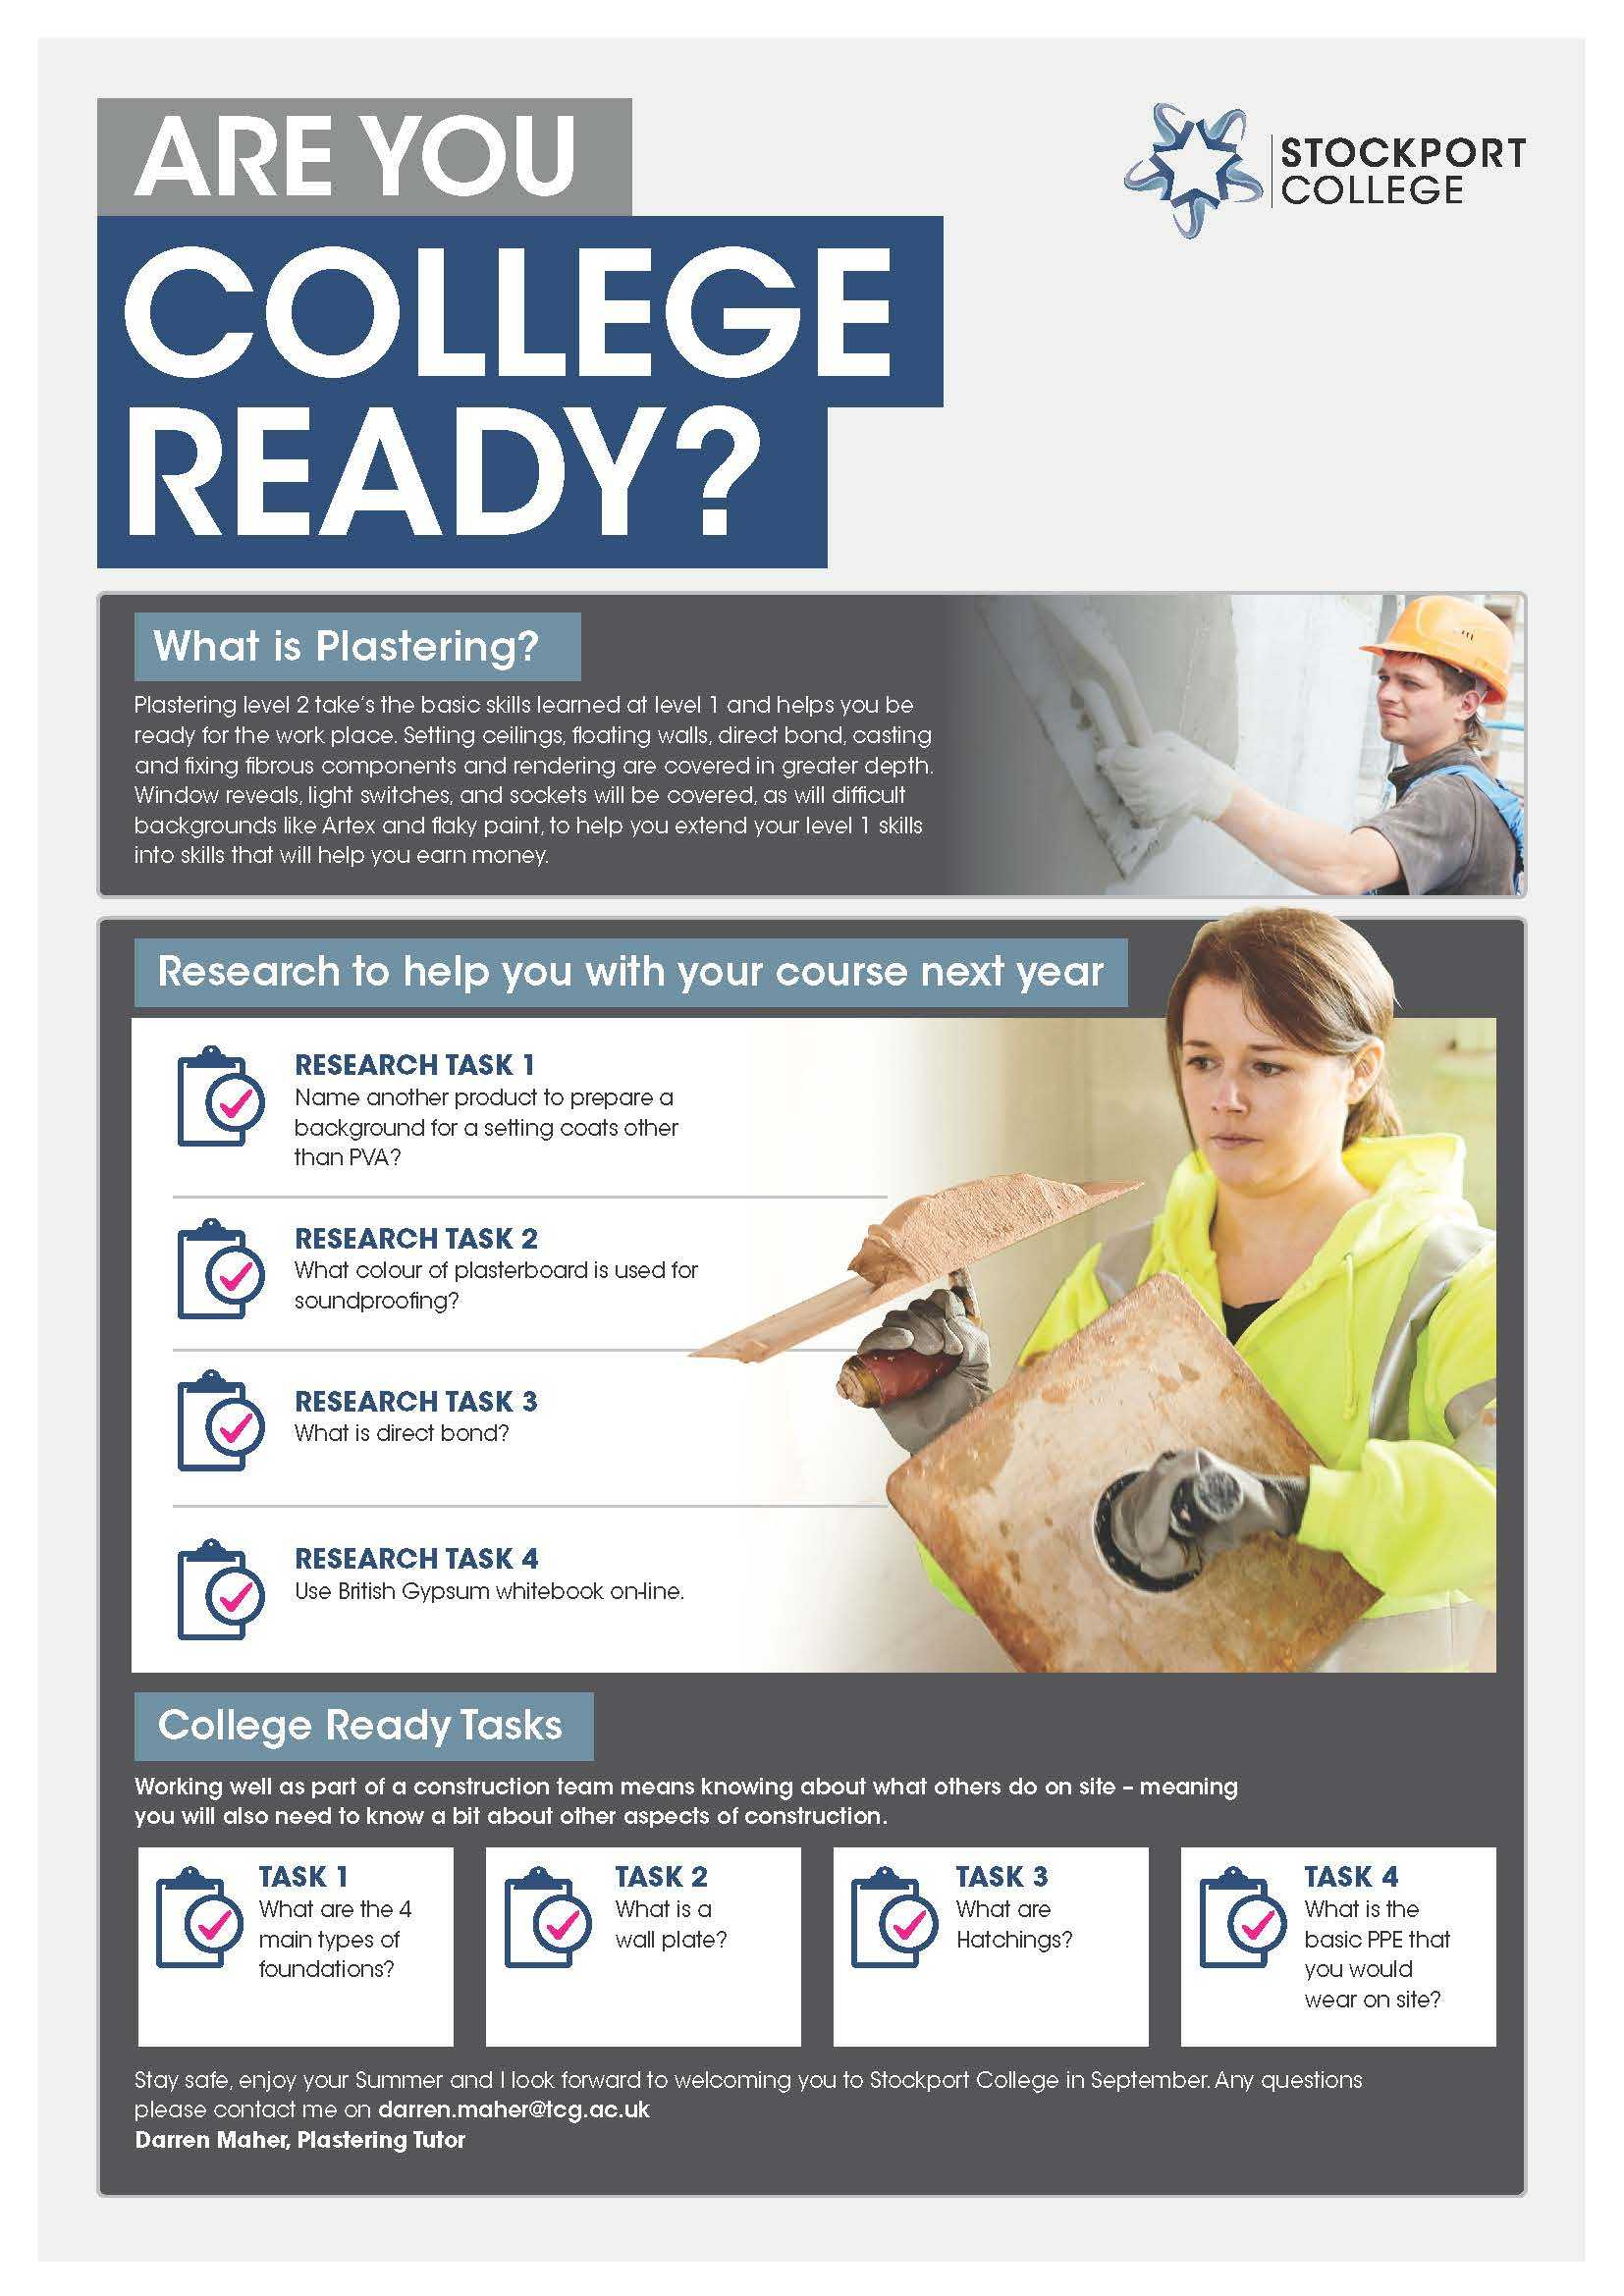 Are You College Ready Transition Leaflet Plastering STOCKPORT May20